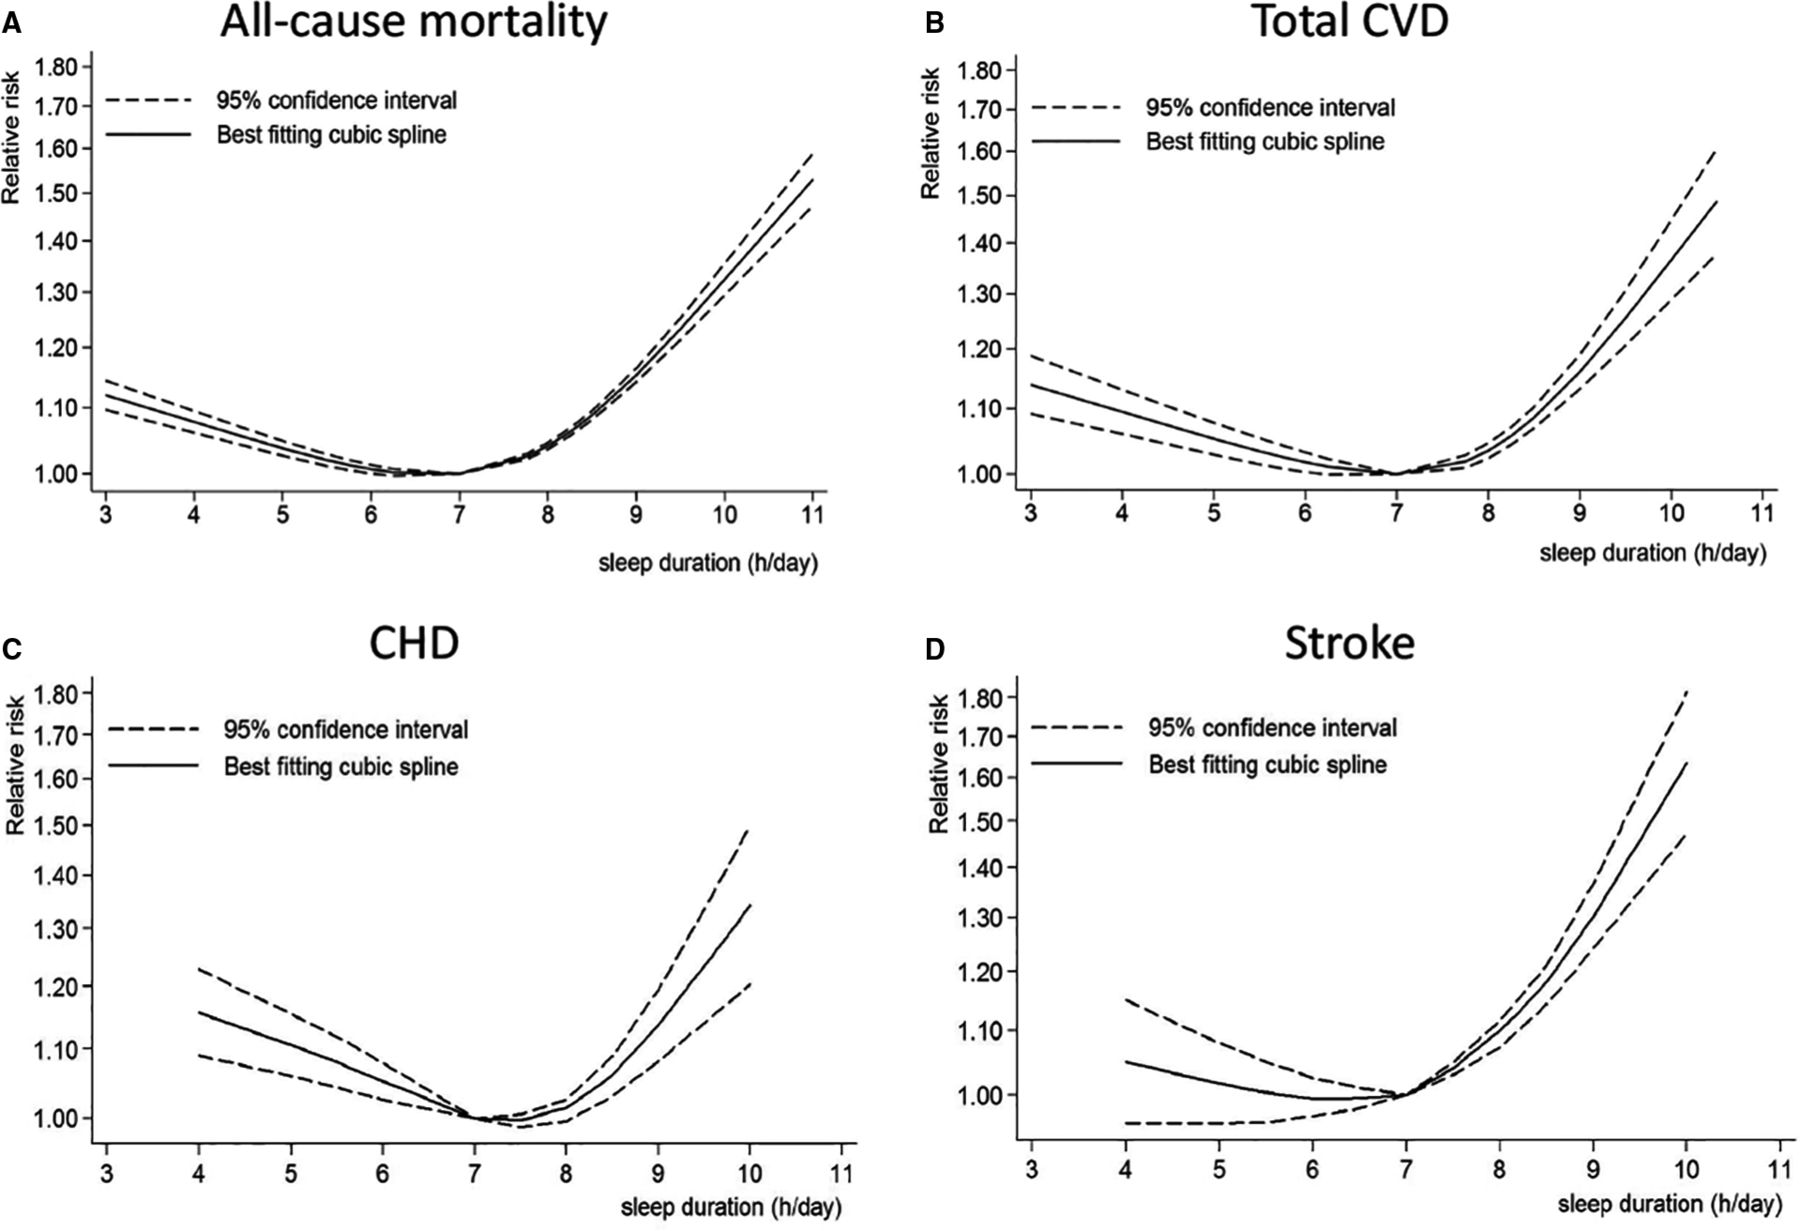 Risk for the overall mortality, cardiovascular disease, coronary heart disease and stroke is at the lowest for 7-8 hours of sleep. From http://jaha.ahajournals.org/content/6/9/e005947